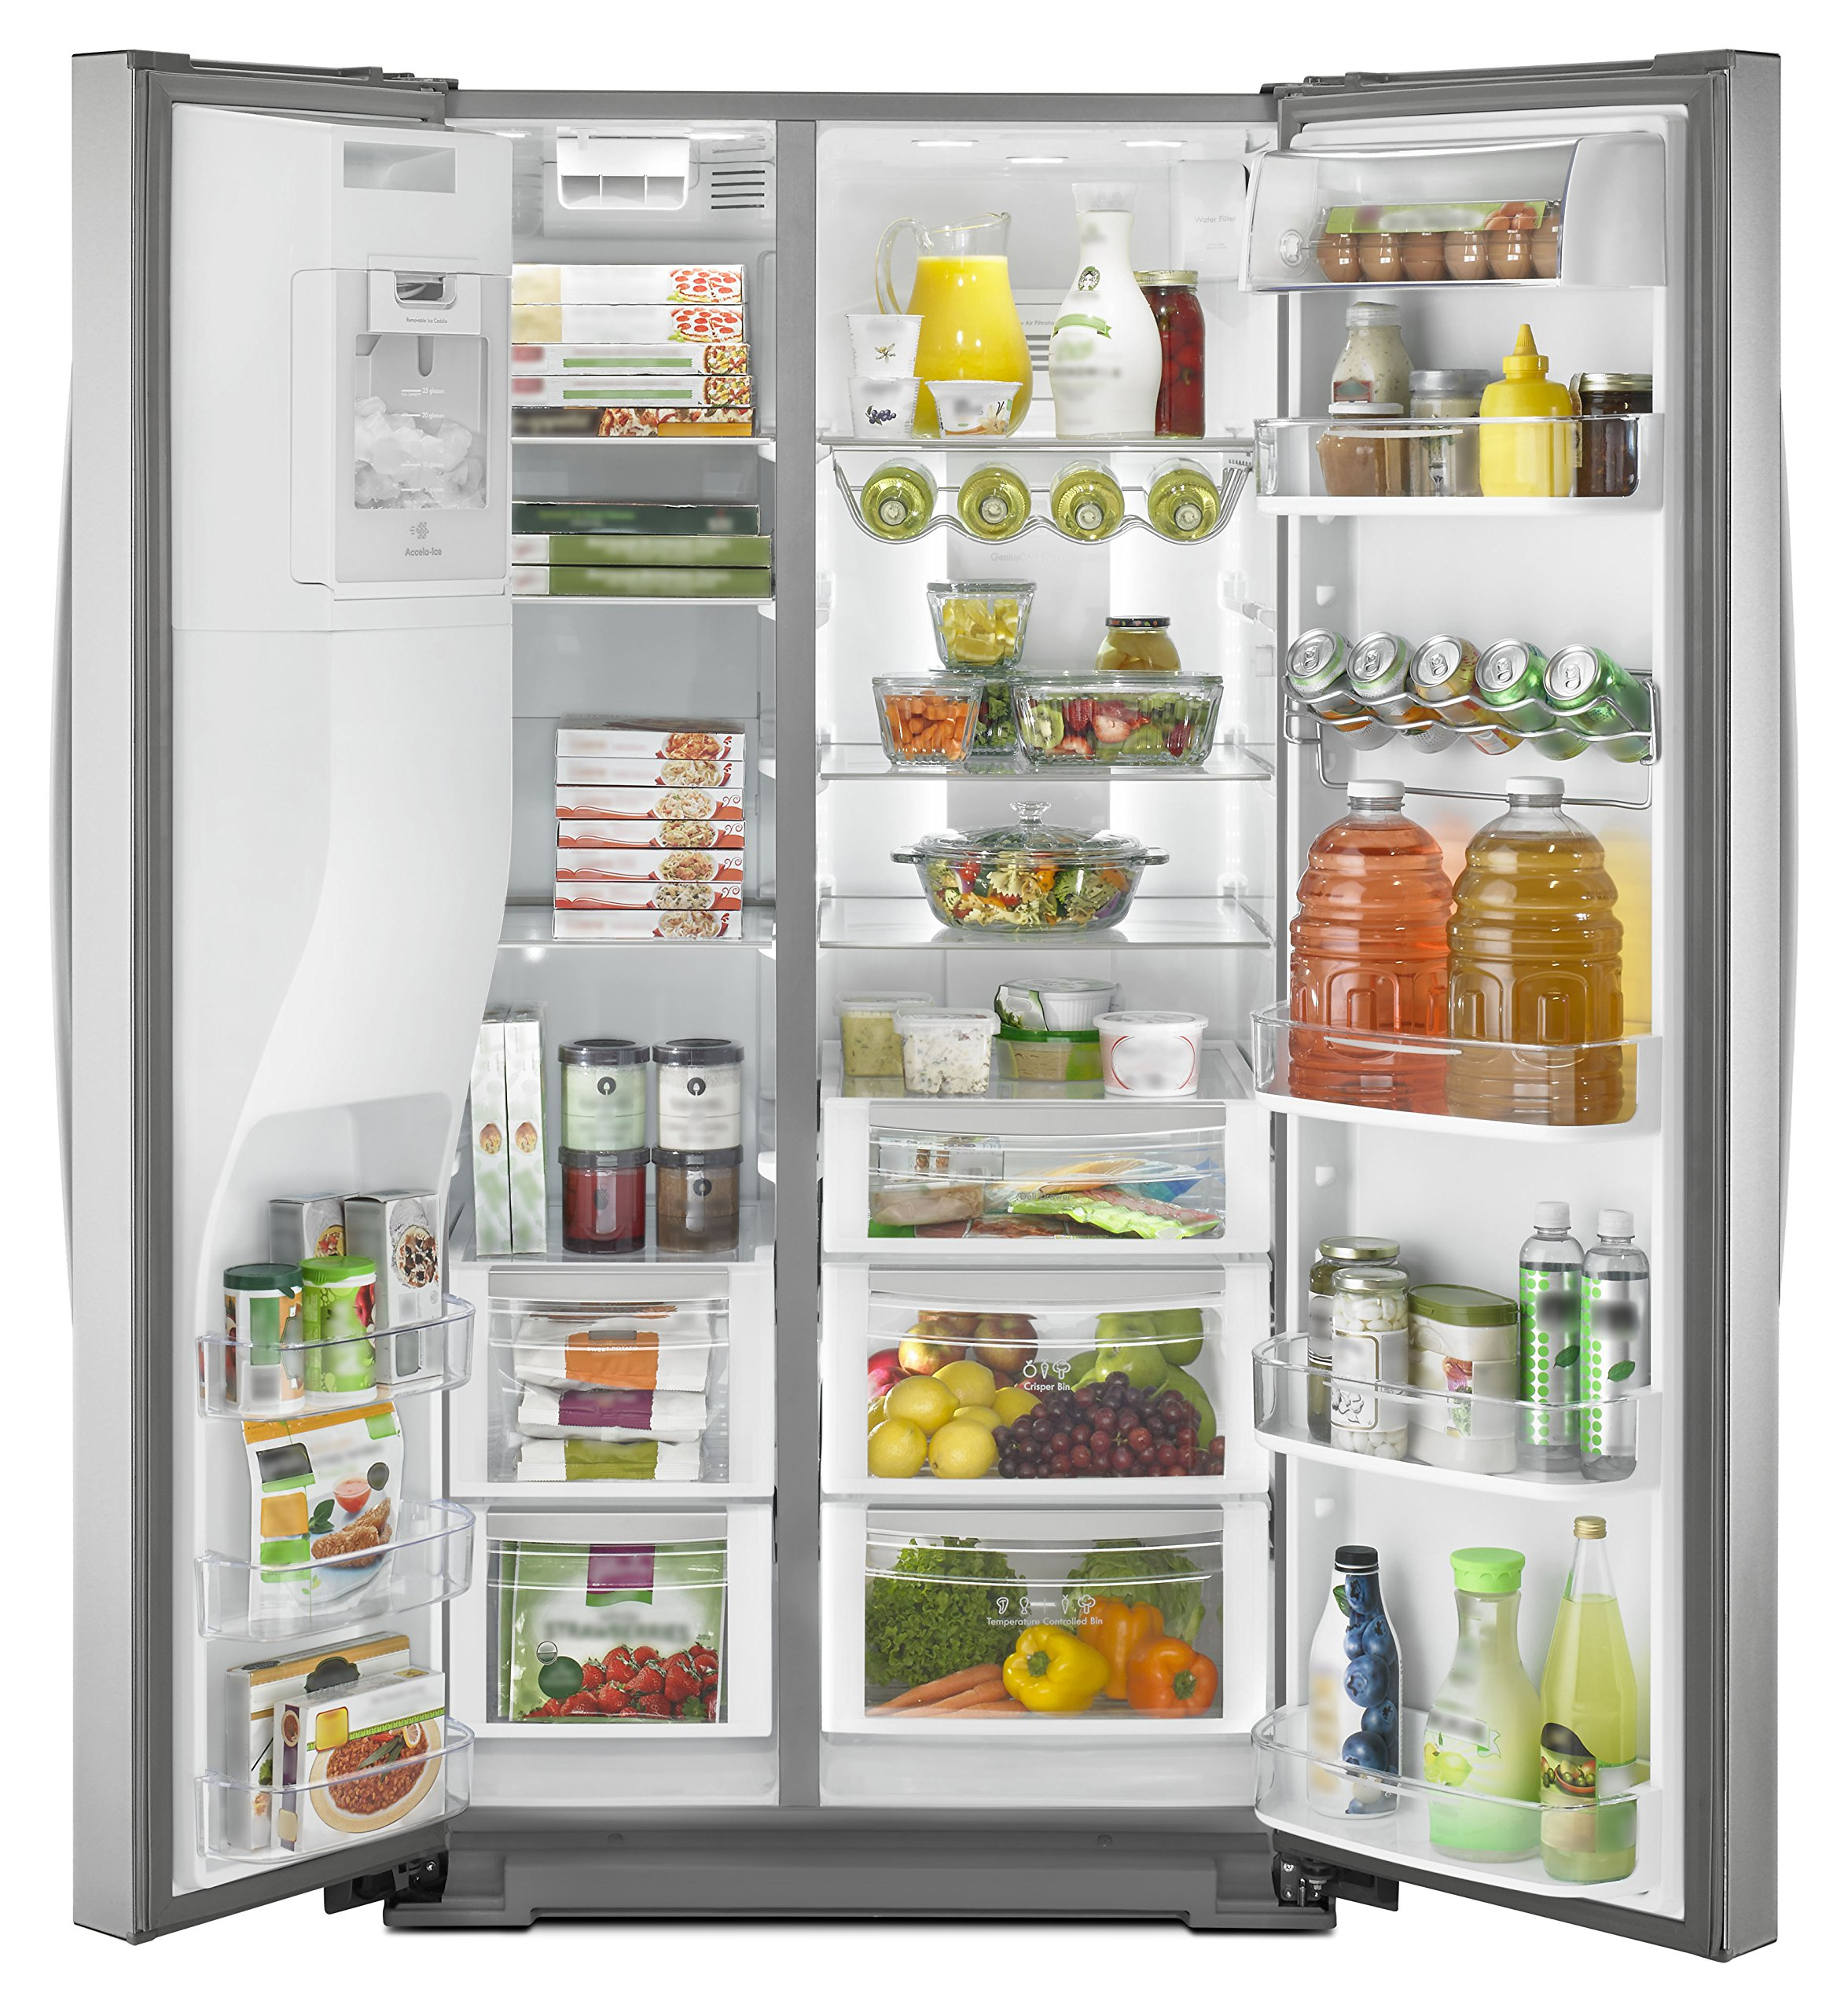 Kenmore Elite 51773 28 cu. ft. Side-by-Side Refrigerator with Accela Ice Technology in Stainless Steel, includes delivery and hookup (Available in select cities only) by Kenmore (Image #6)